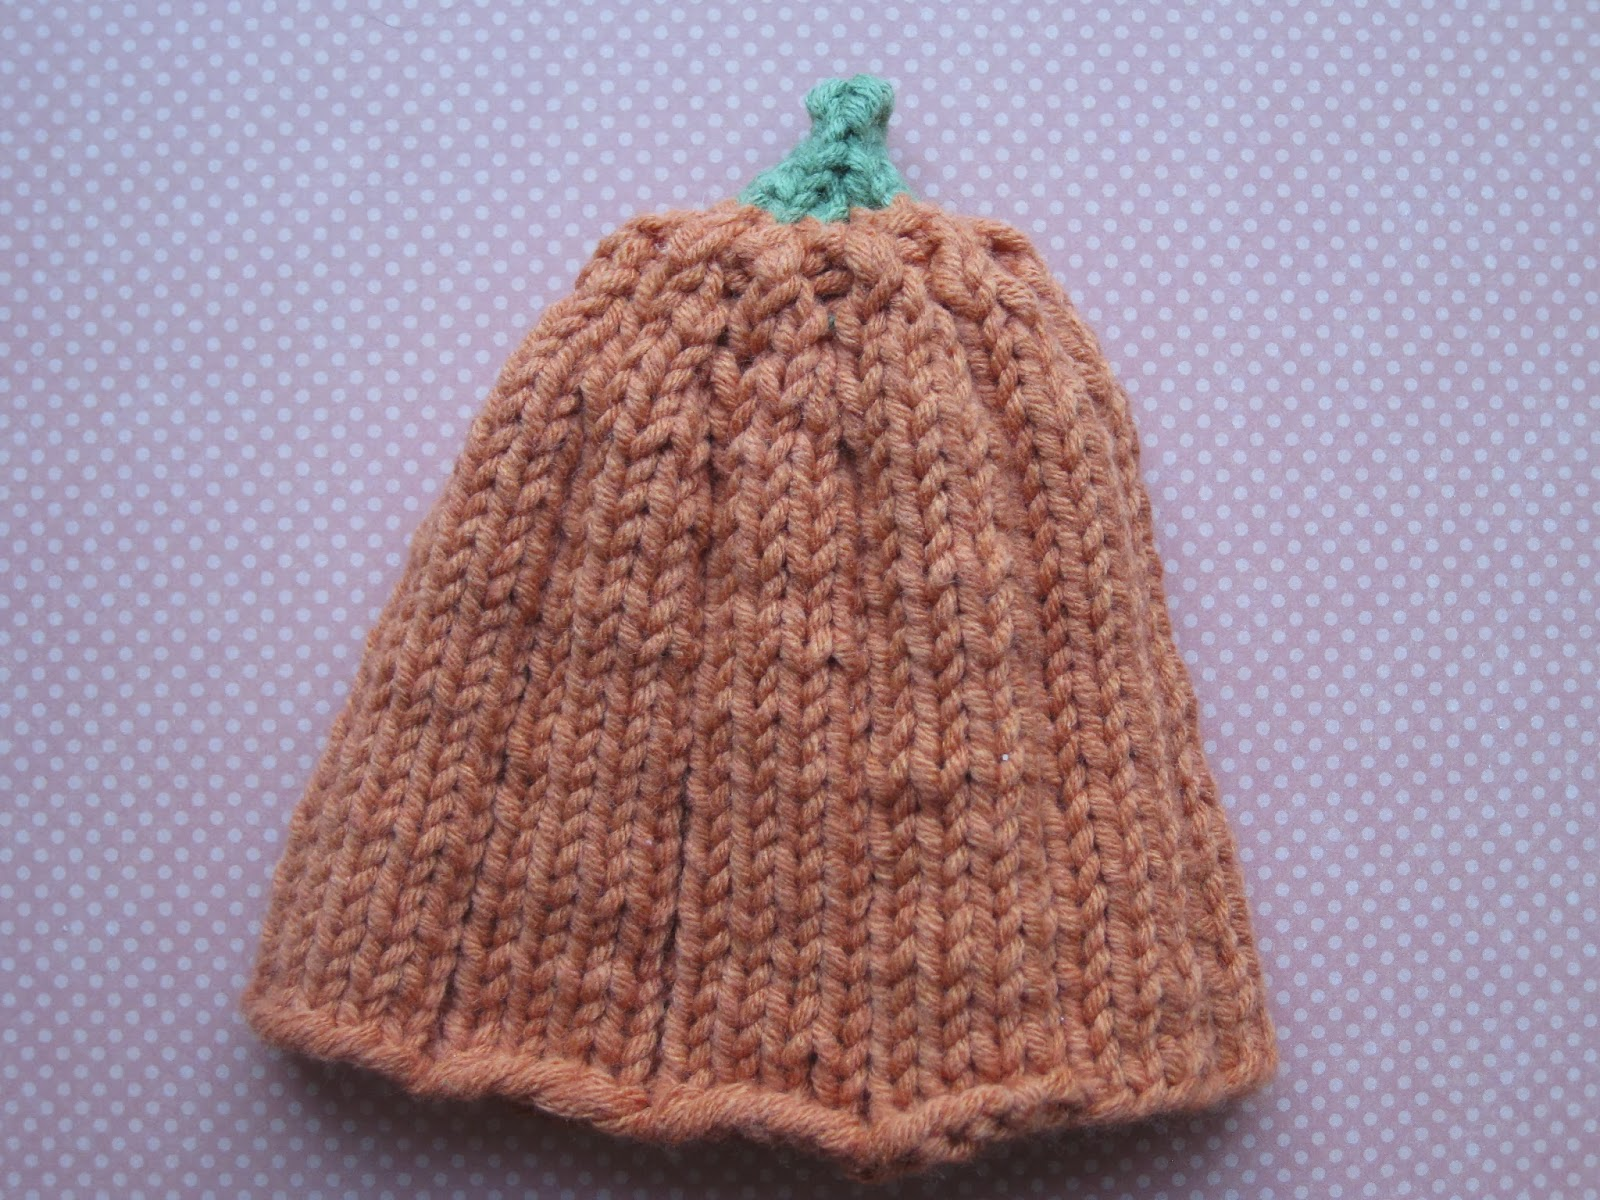 Oma Socks: Newborn Pumpkin Hat Knitting Pattern